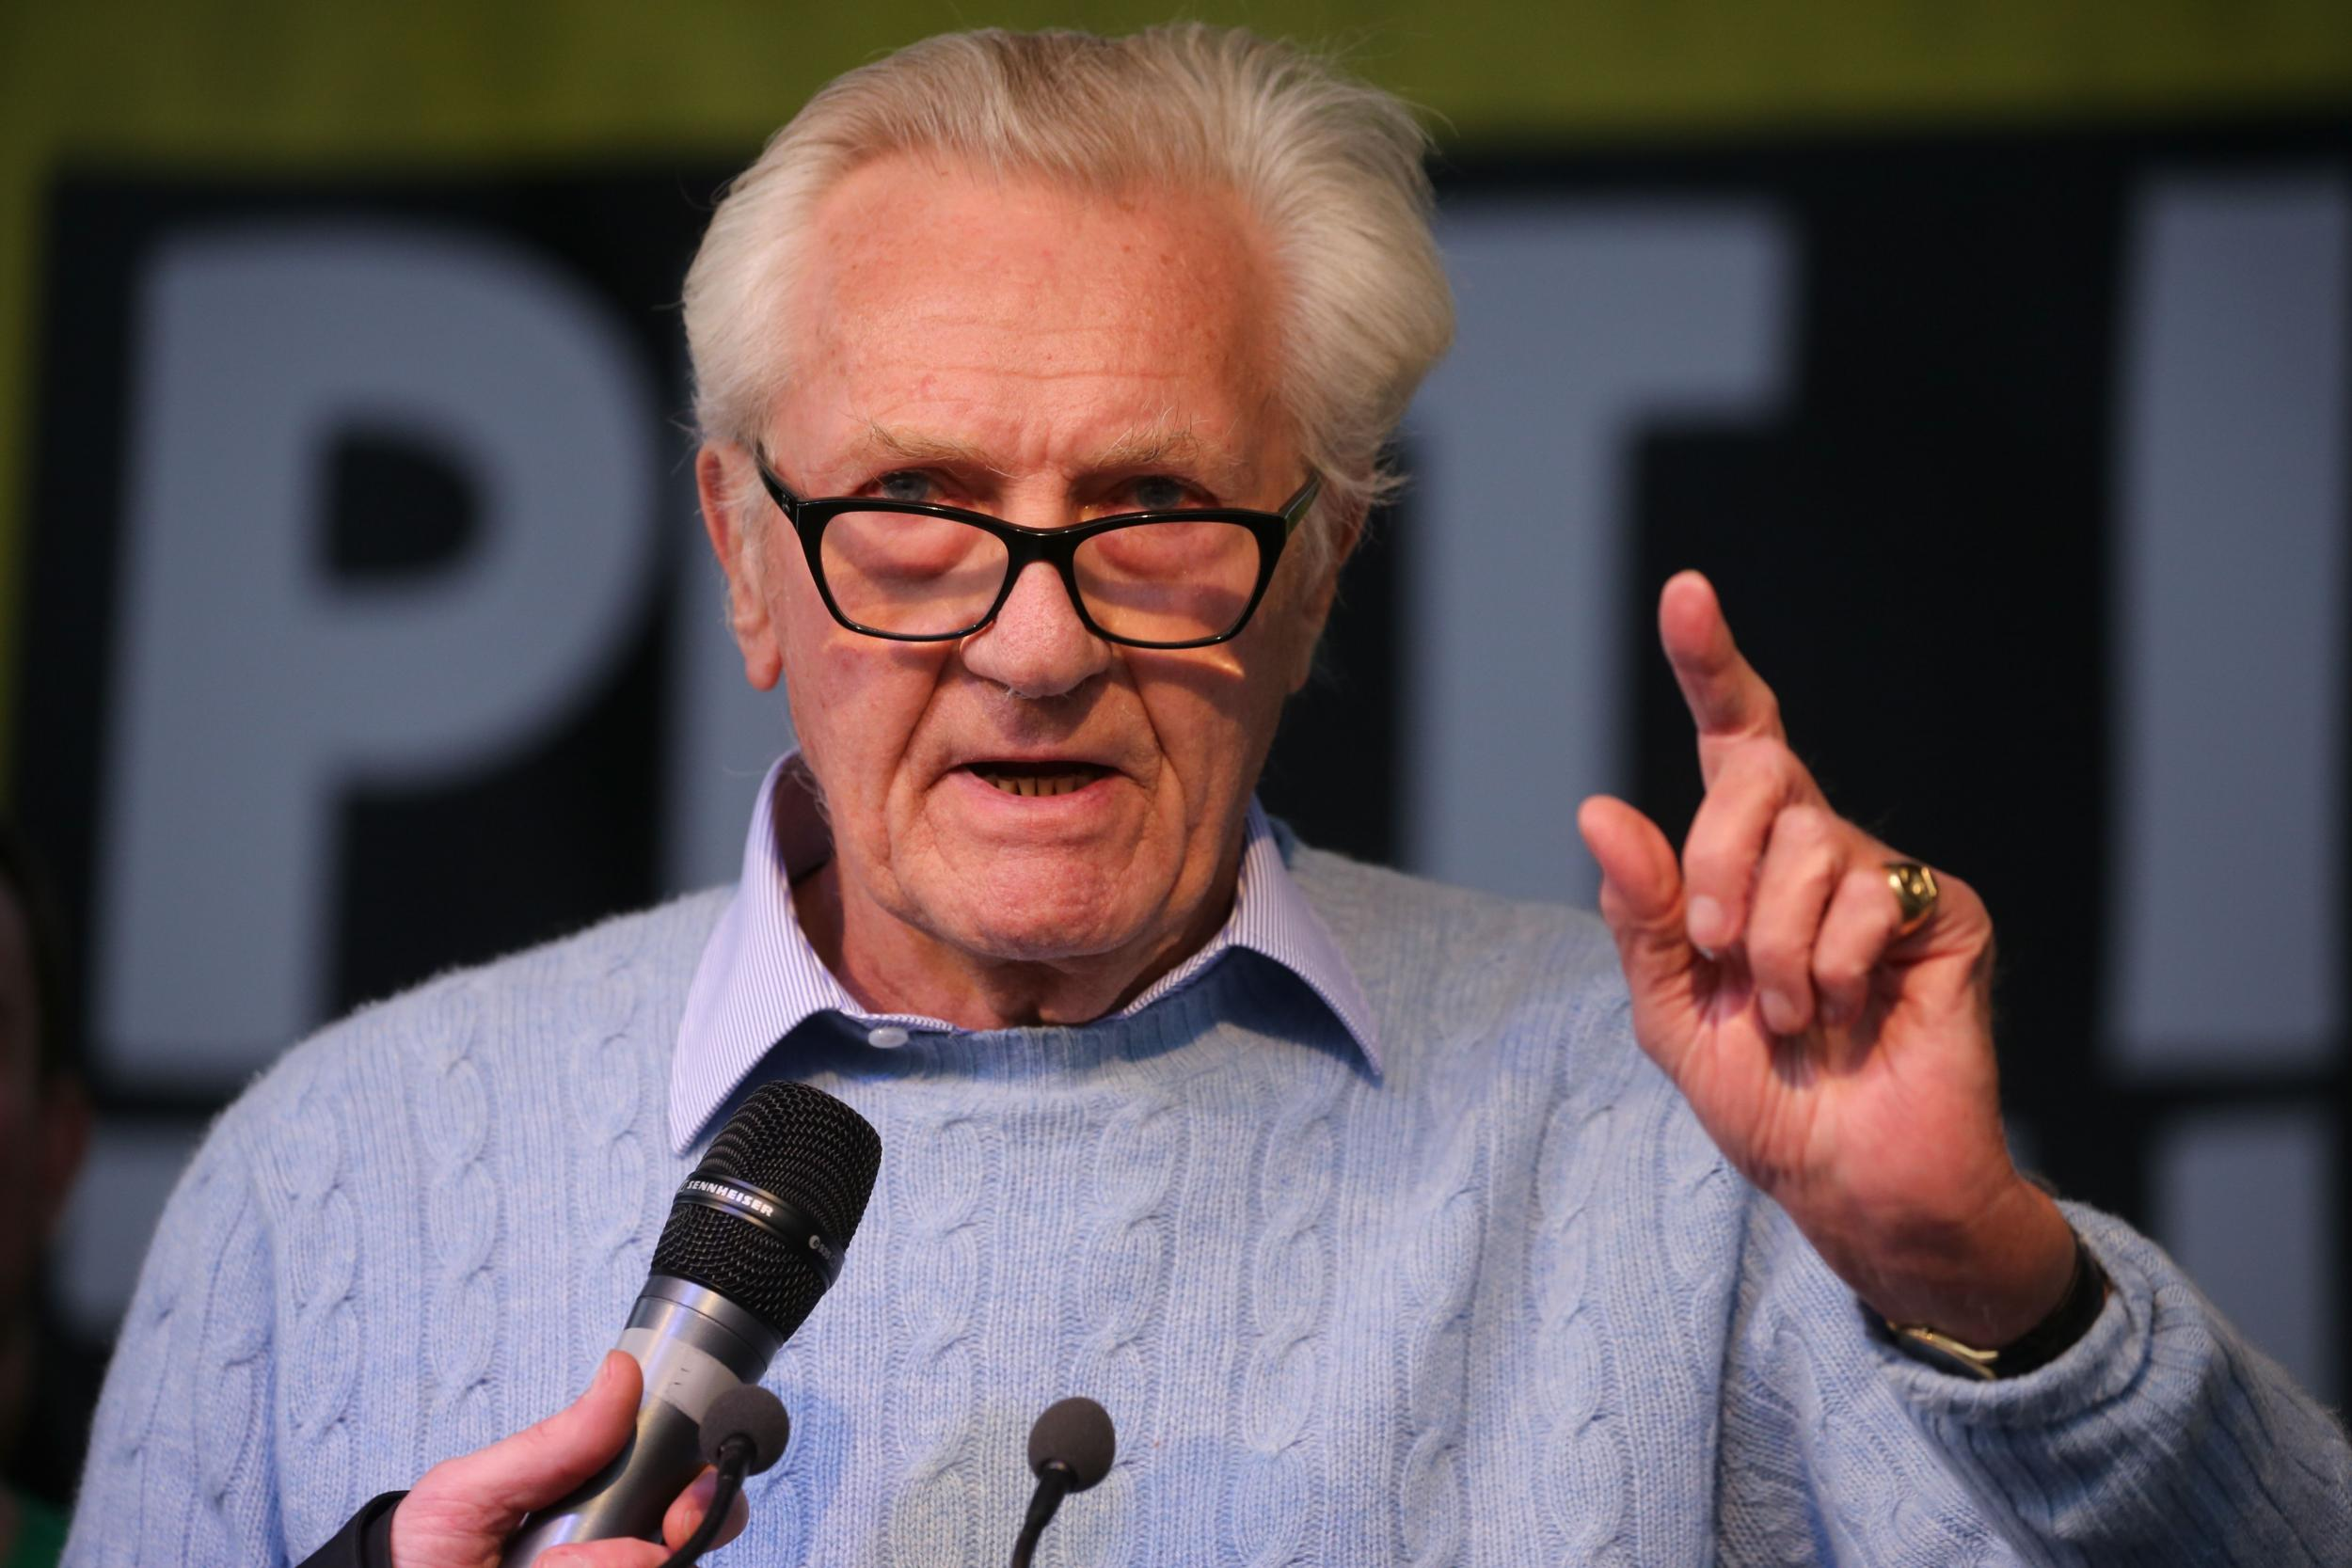 Battle for UK to remain in the EU is now lost and rejoining won't be prospect for 20 years, admits Lord Heseltine